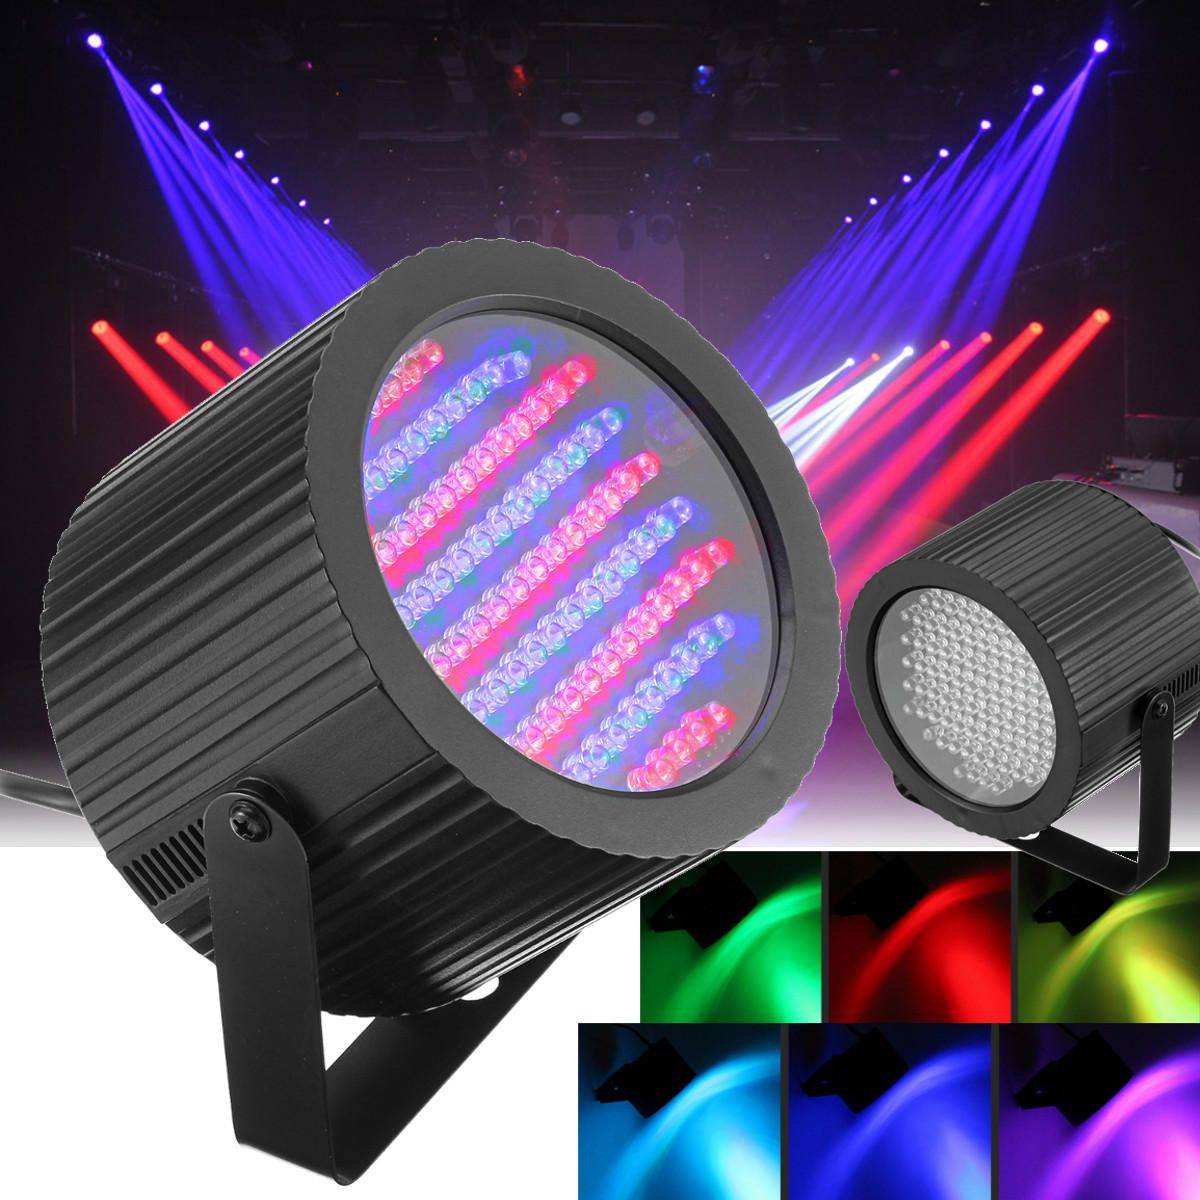 SPB US$32.13 2pcs 86 LED RGB Sound Active Stage Light DMX DJ Disco Club Bar Strobe Lighting